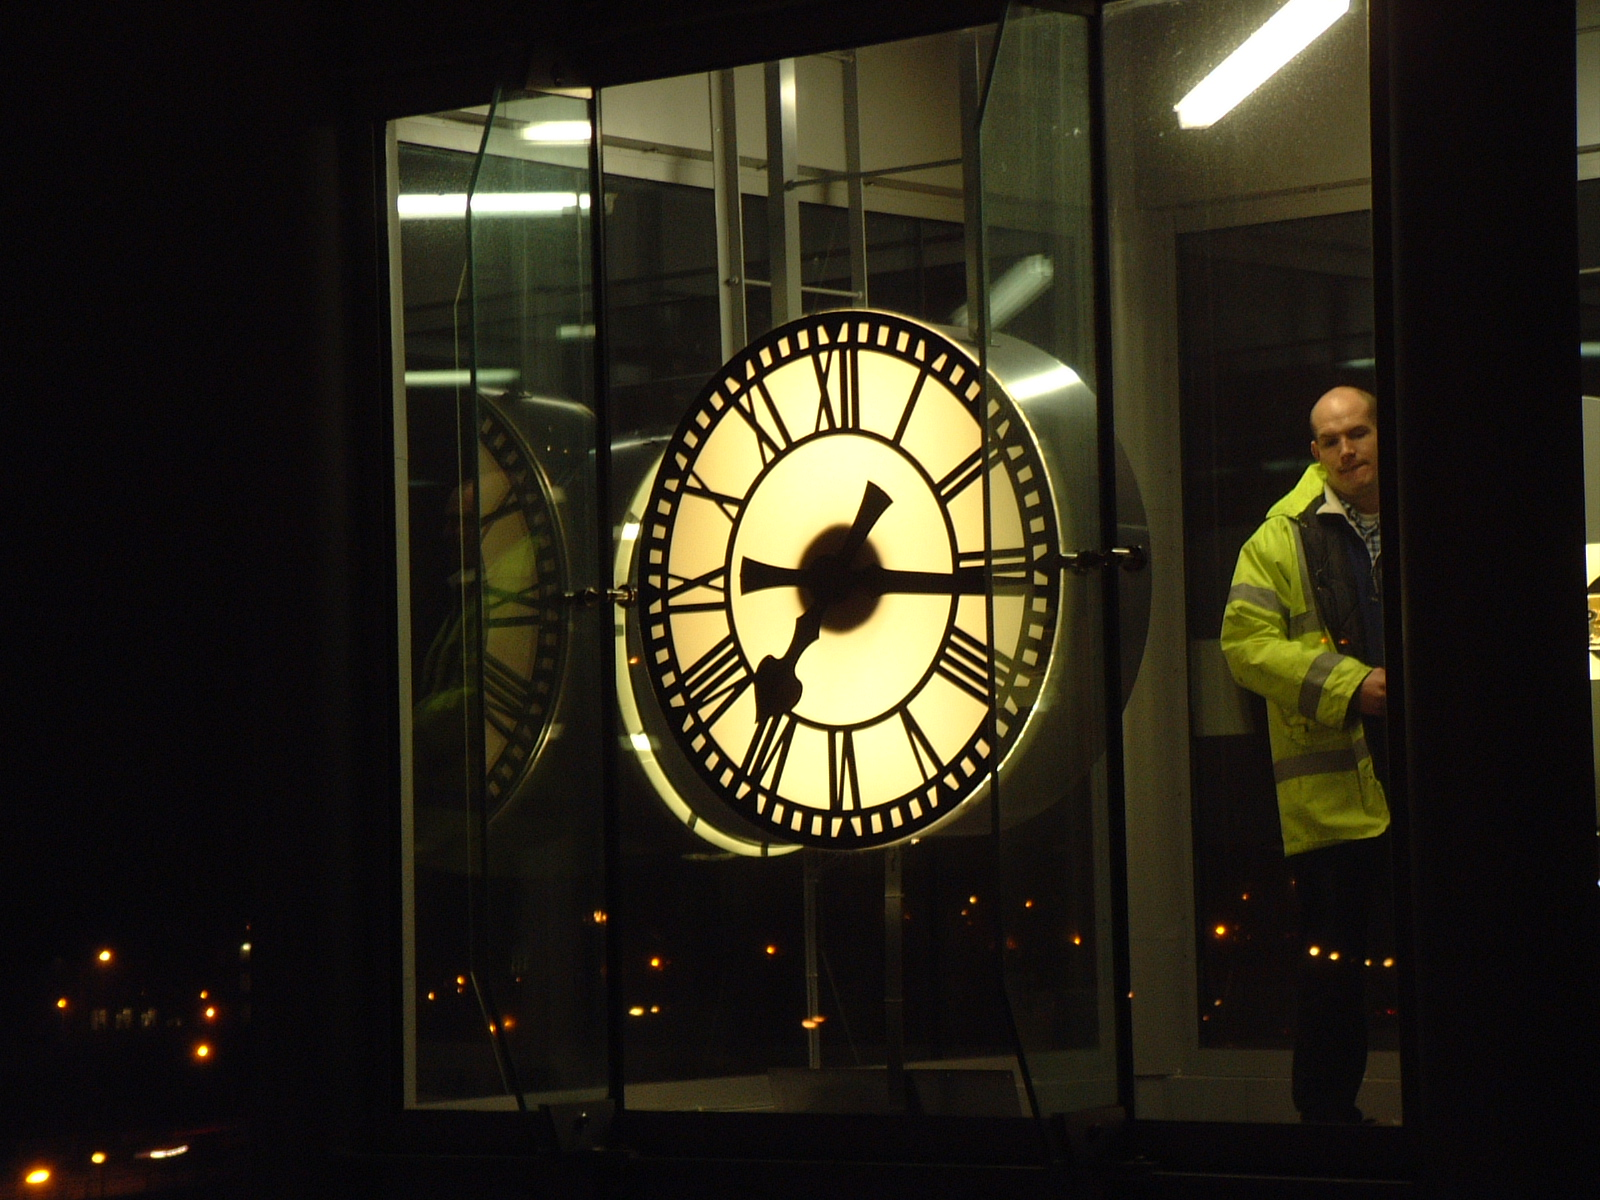 Skeleton clocks on a lift shaft